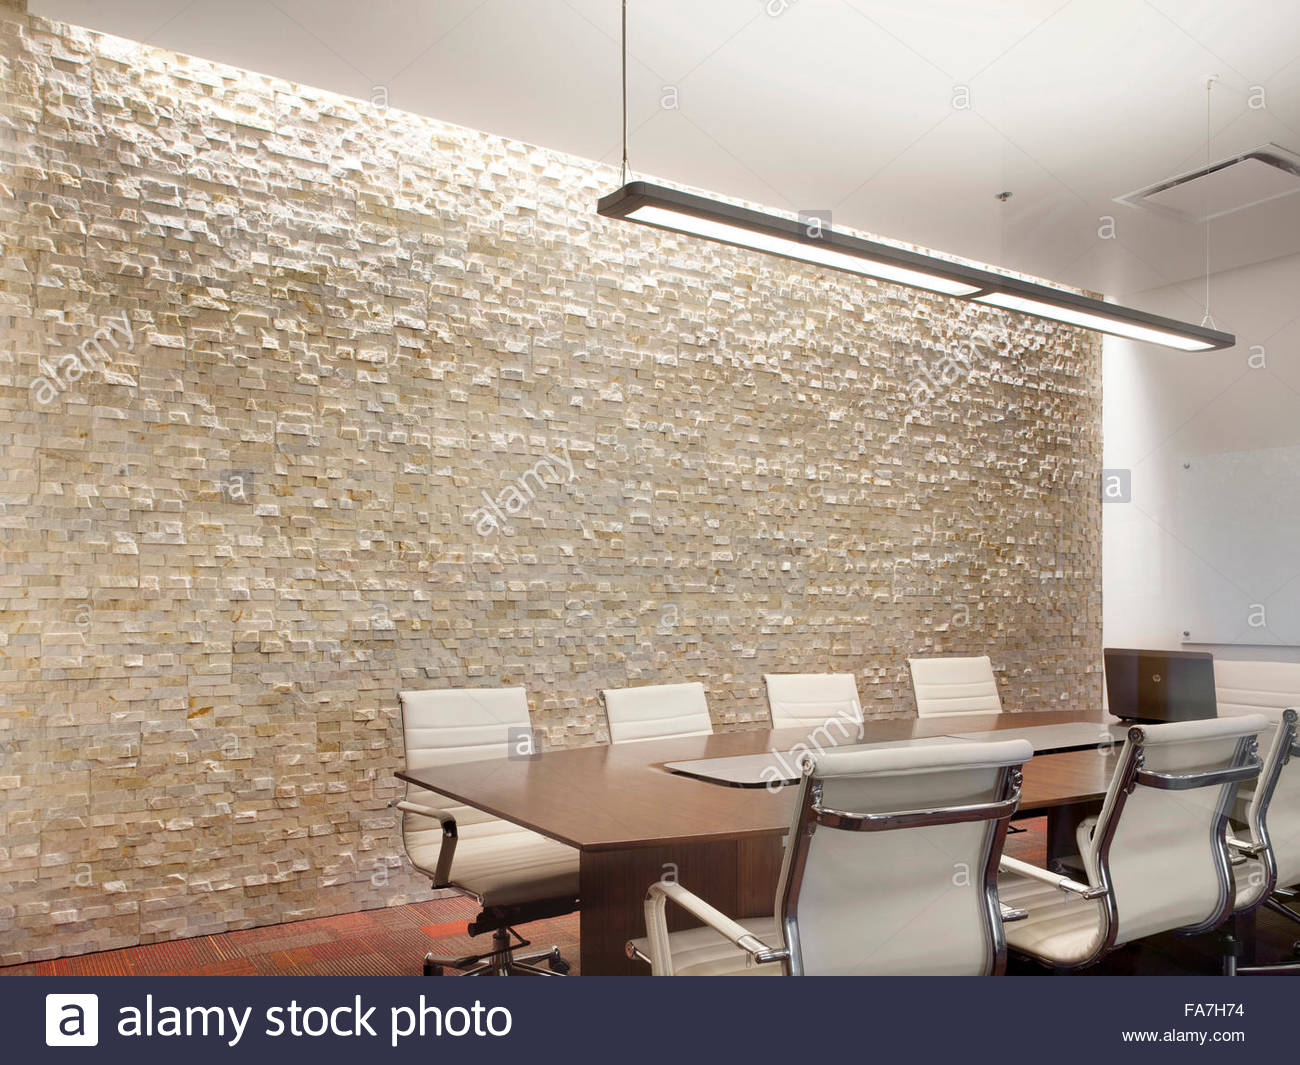 Office Conference Room With Creative Lighting Designed By Pinnacle Lighting.  A Feature Textured Wall,